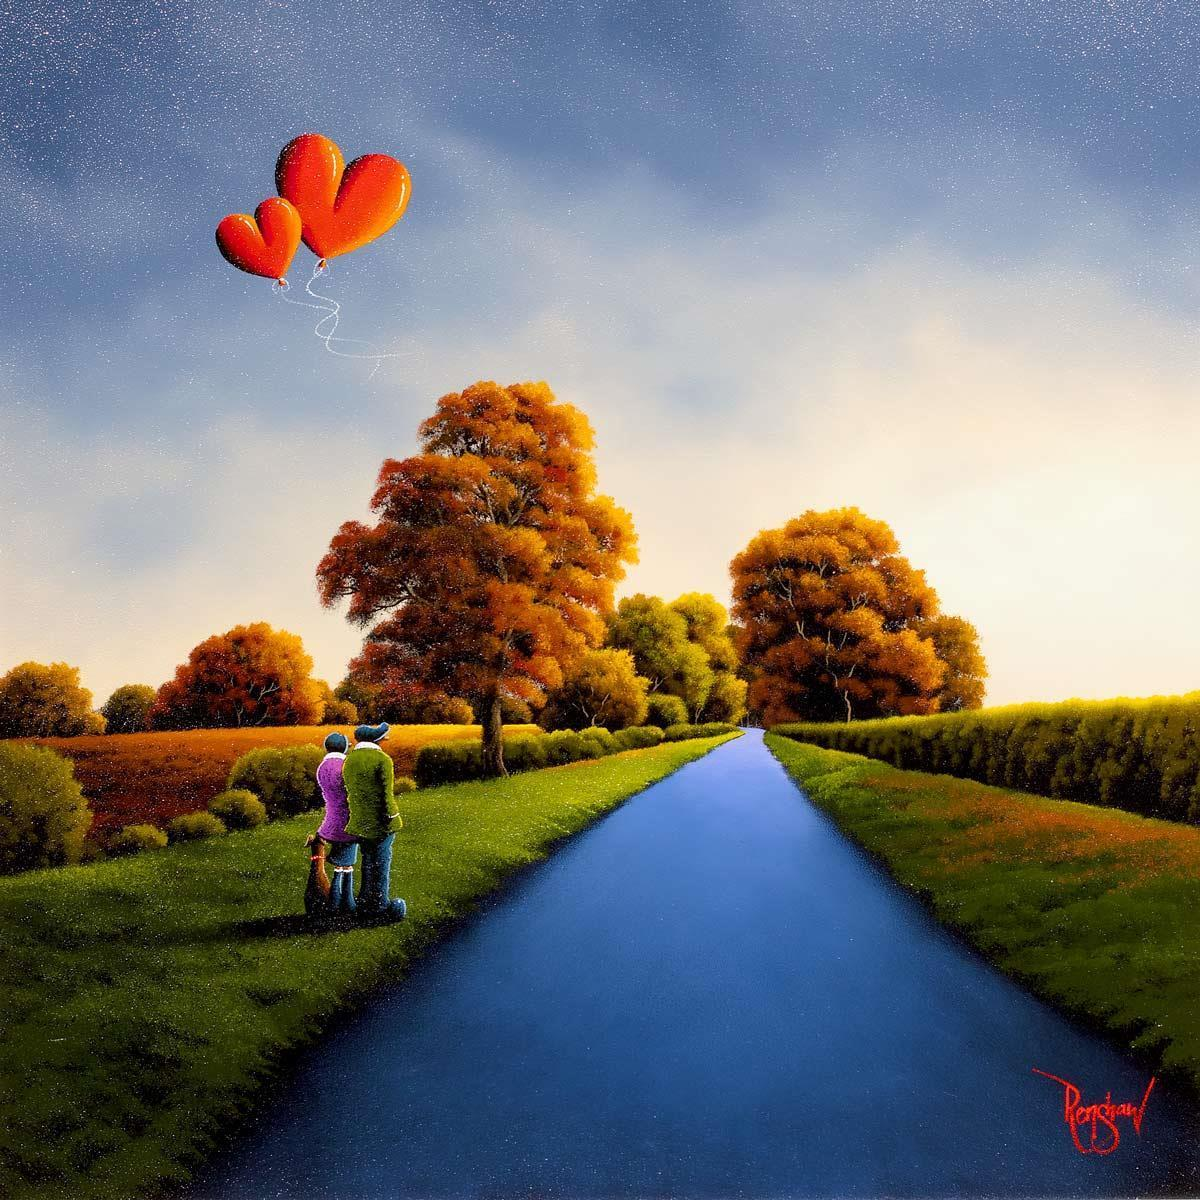 Season of Love David Renshaw